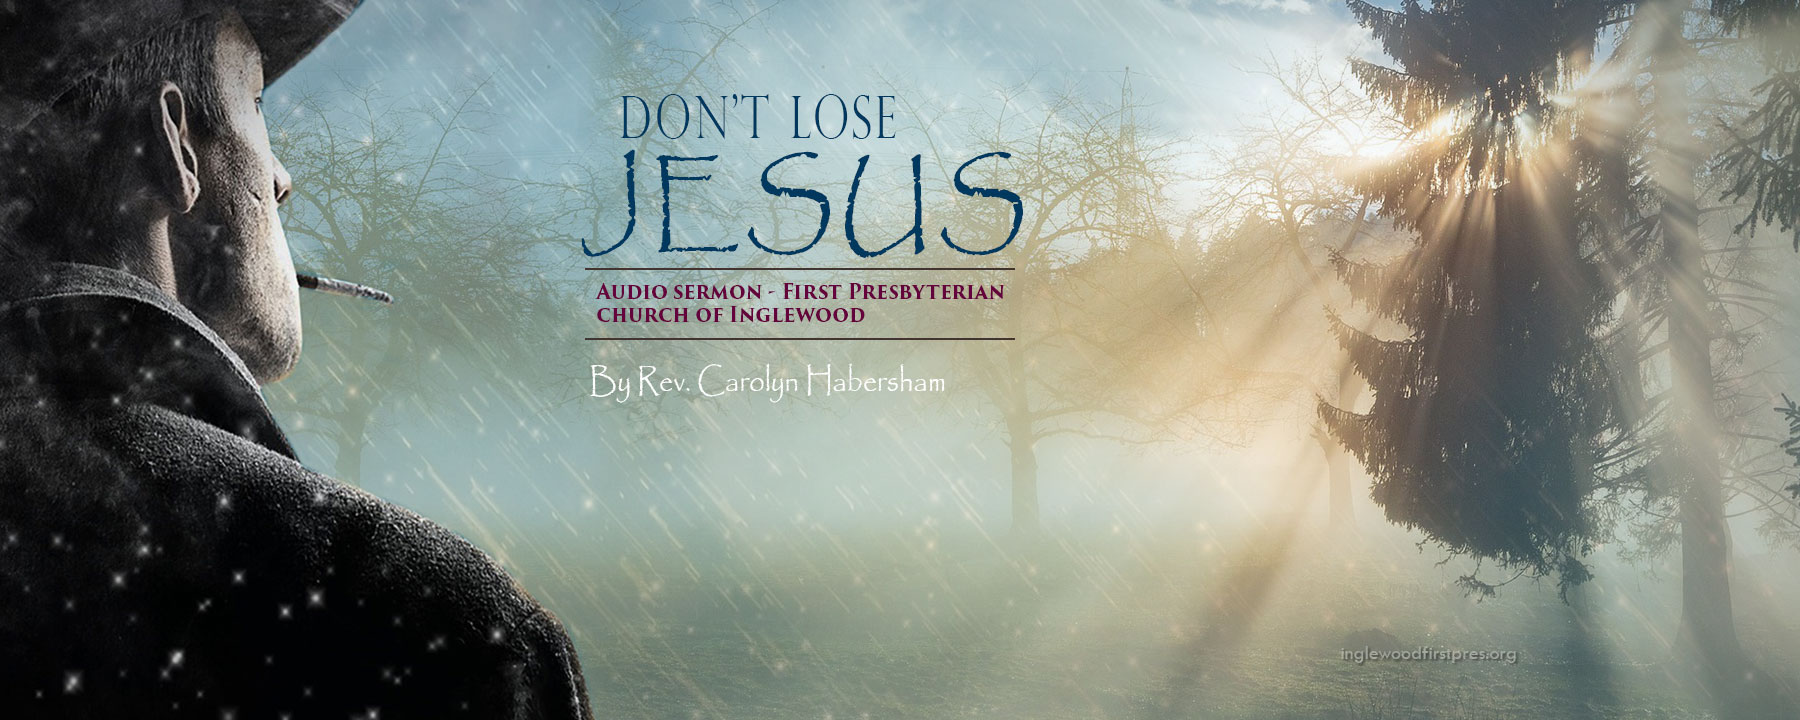 Audio Sermon: Don't Lose Jesus by Rev. Carolyn Habersham